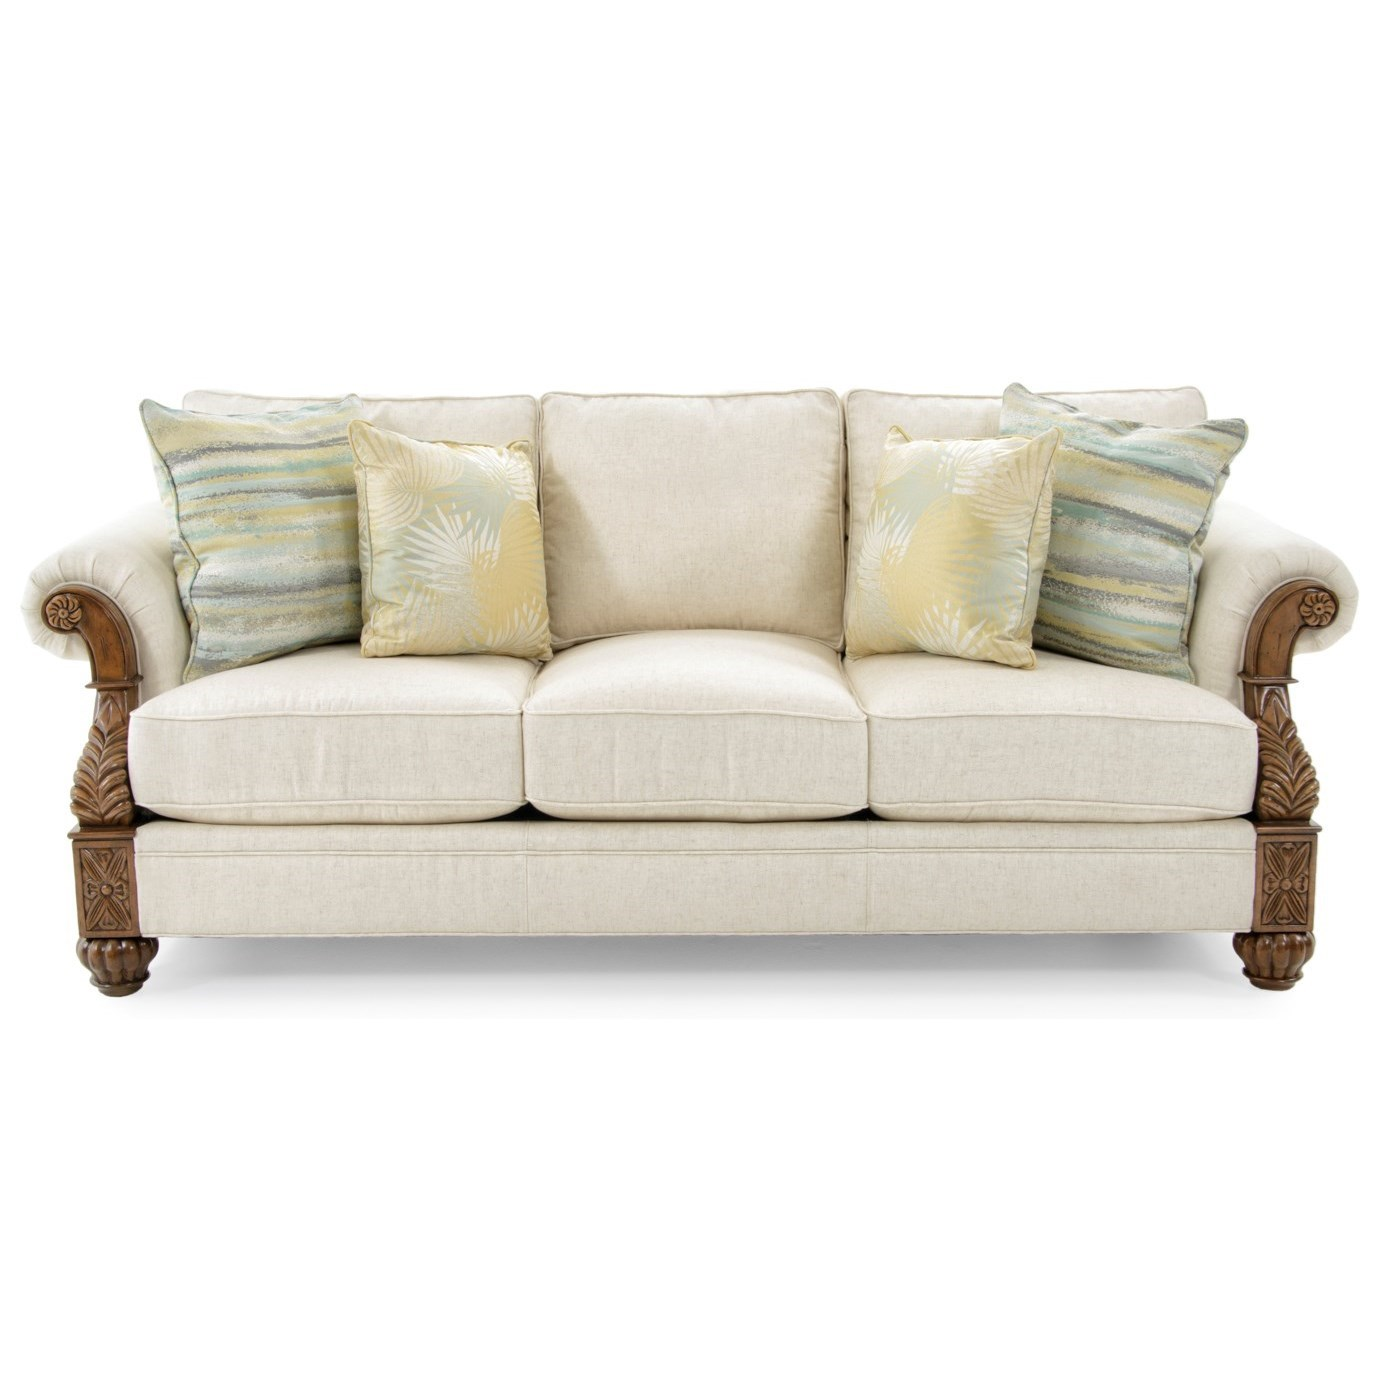 Tommy Bahama Home Tommy Bahama Upholstery Benoa Harbour Sofa Married Fabric - Item Number: 7530-33-02